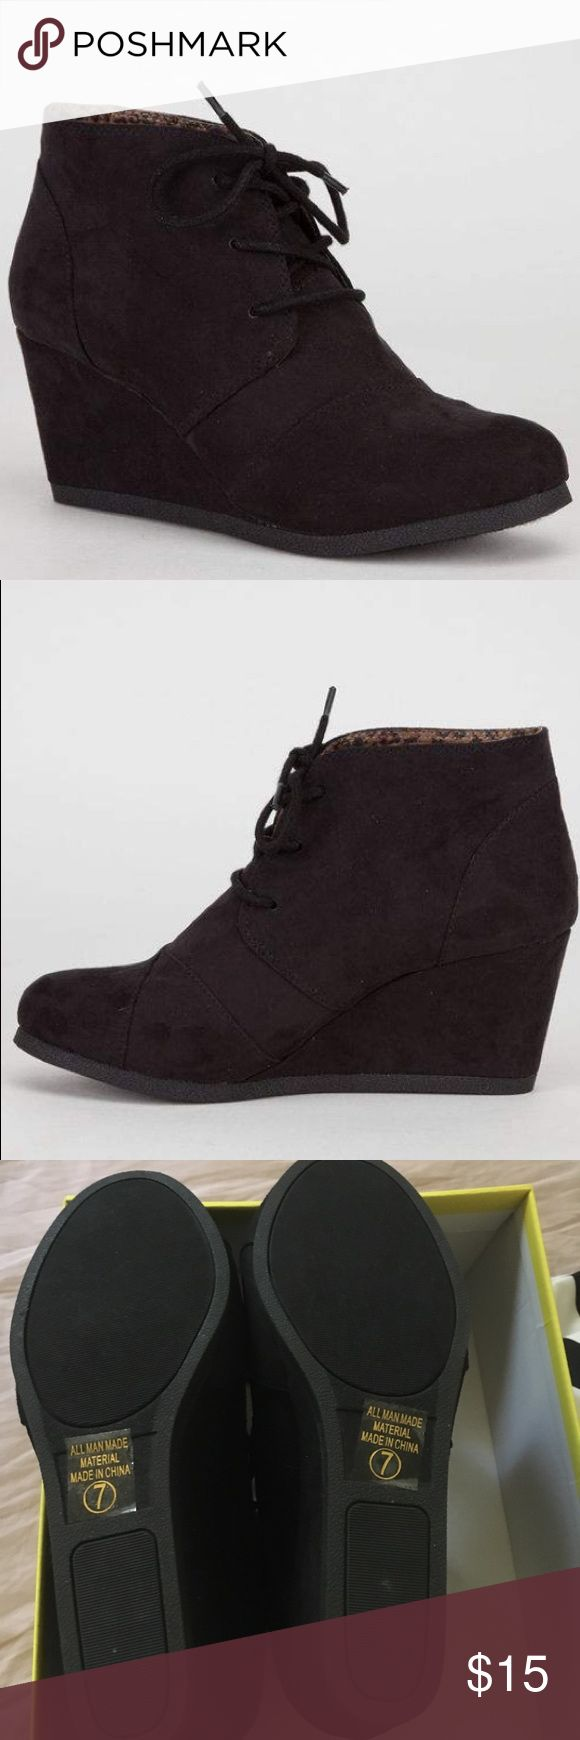 Booties Black Wedge Booties. New with shoe box. Size 7. city classified Shoes Ankle Boots & Booties